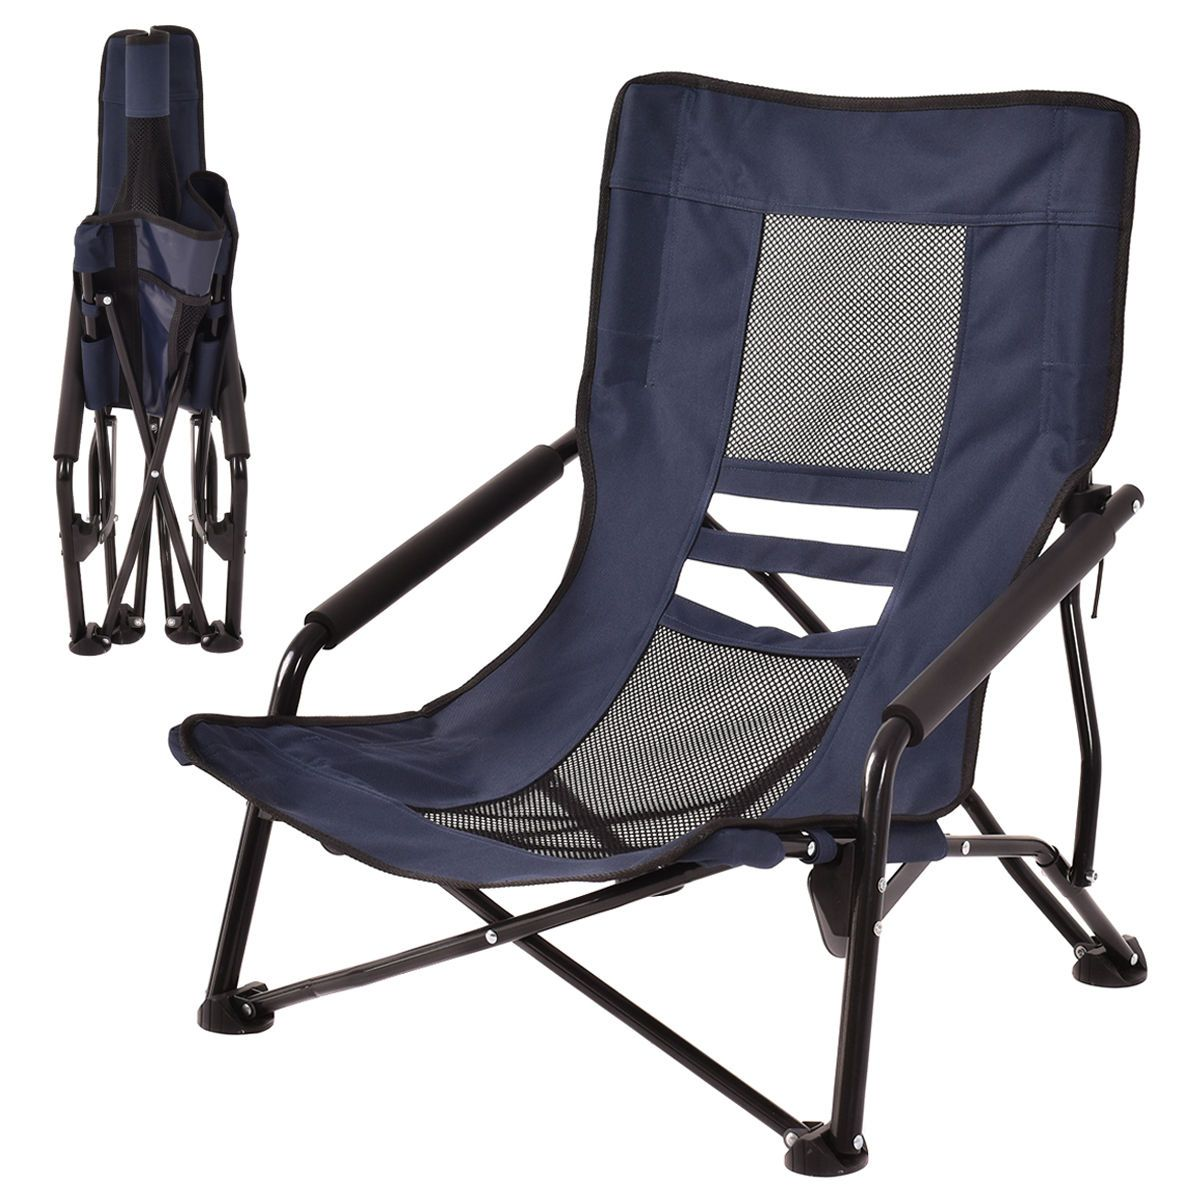 Outdoor High Back Folding Beach Chair Camping Furniture Portable Mesh Seat Navy Folding Beach Chair Camping Furniture Beach Chairs Portable